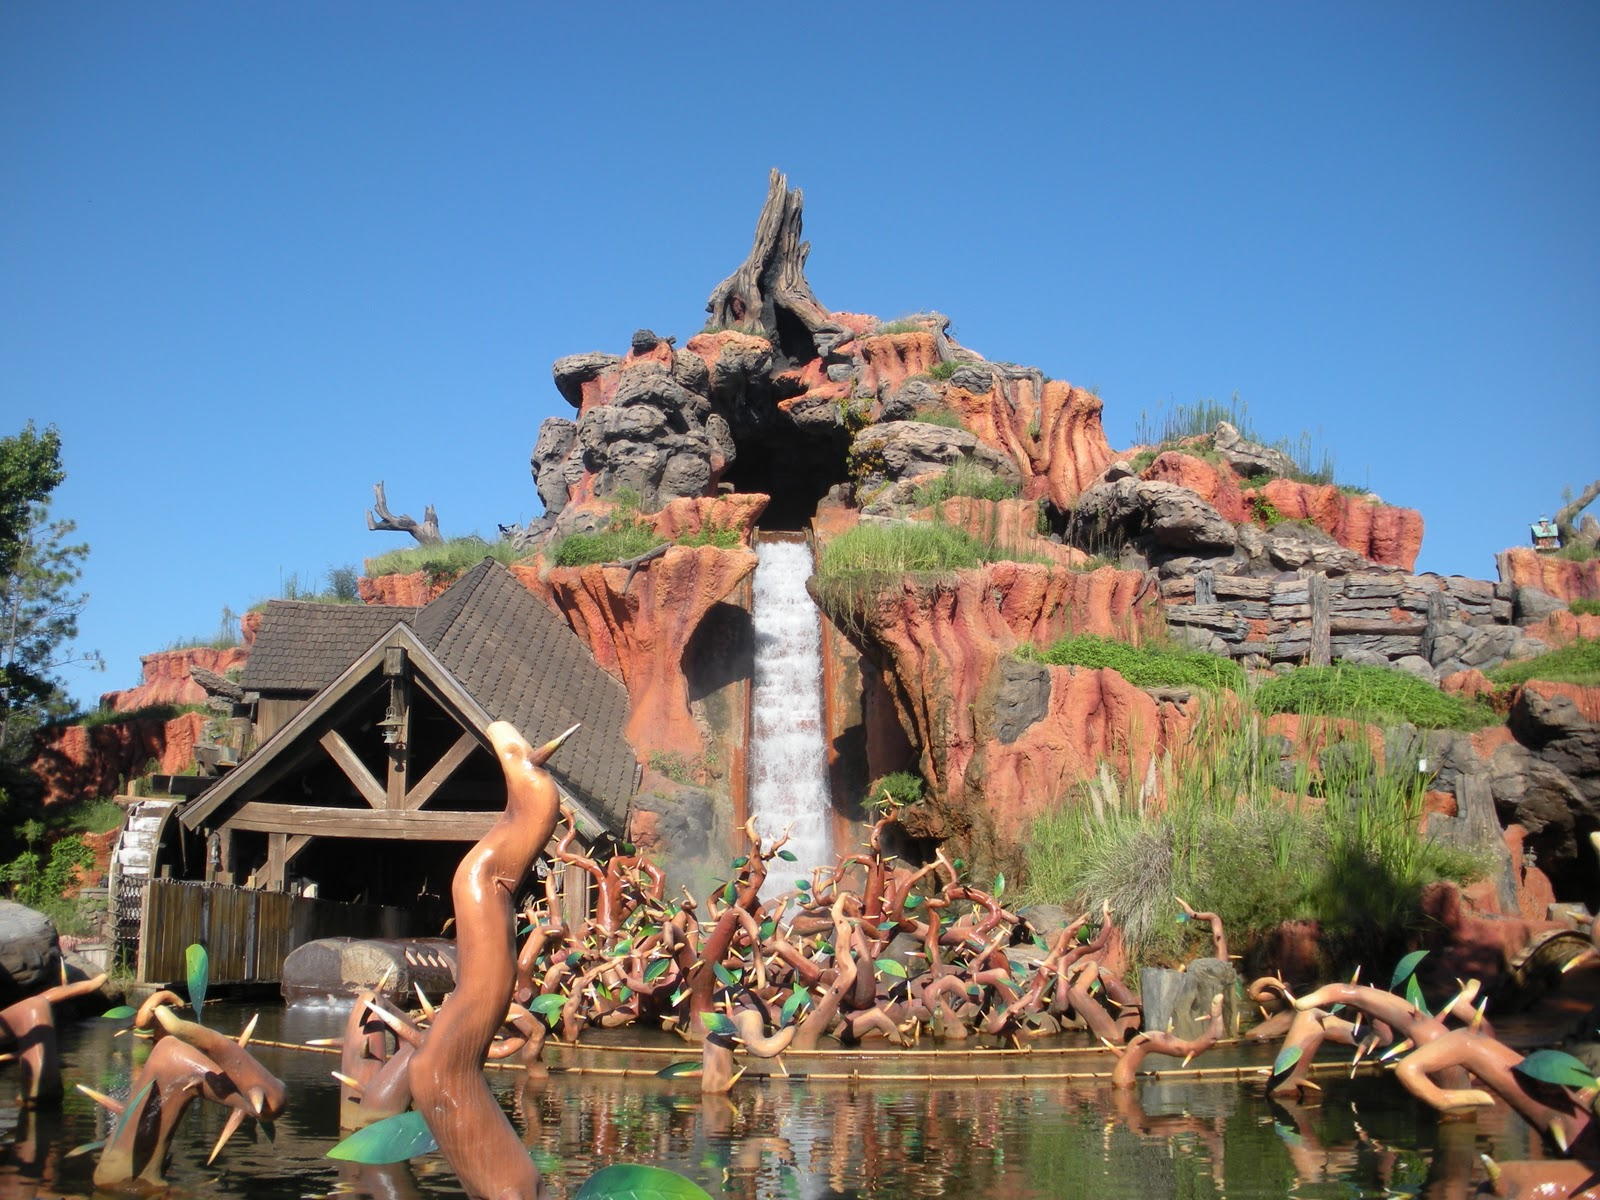 Magic Kingdom Rides in Orlando Florida Magic Kingdom | Orlando